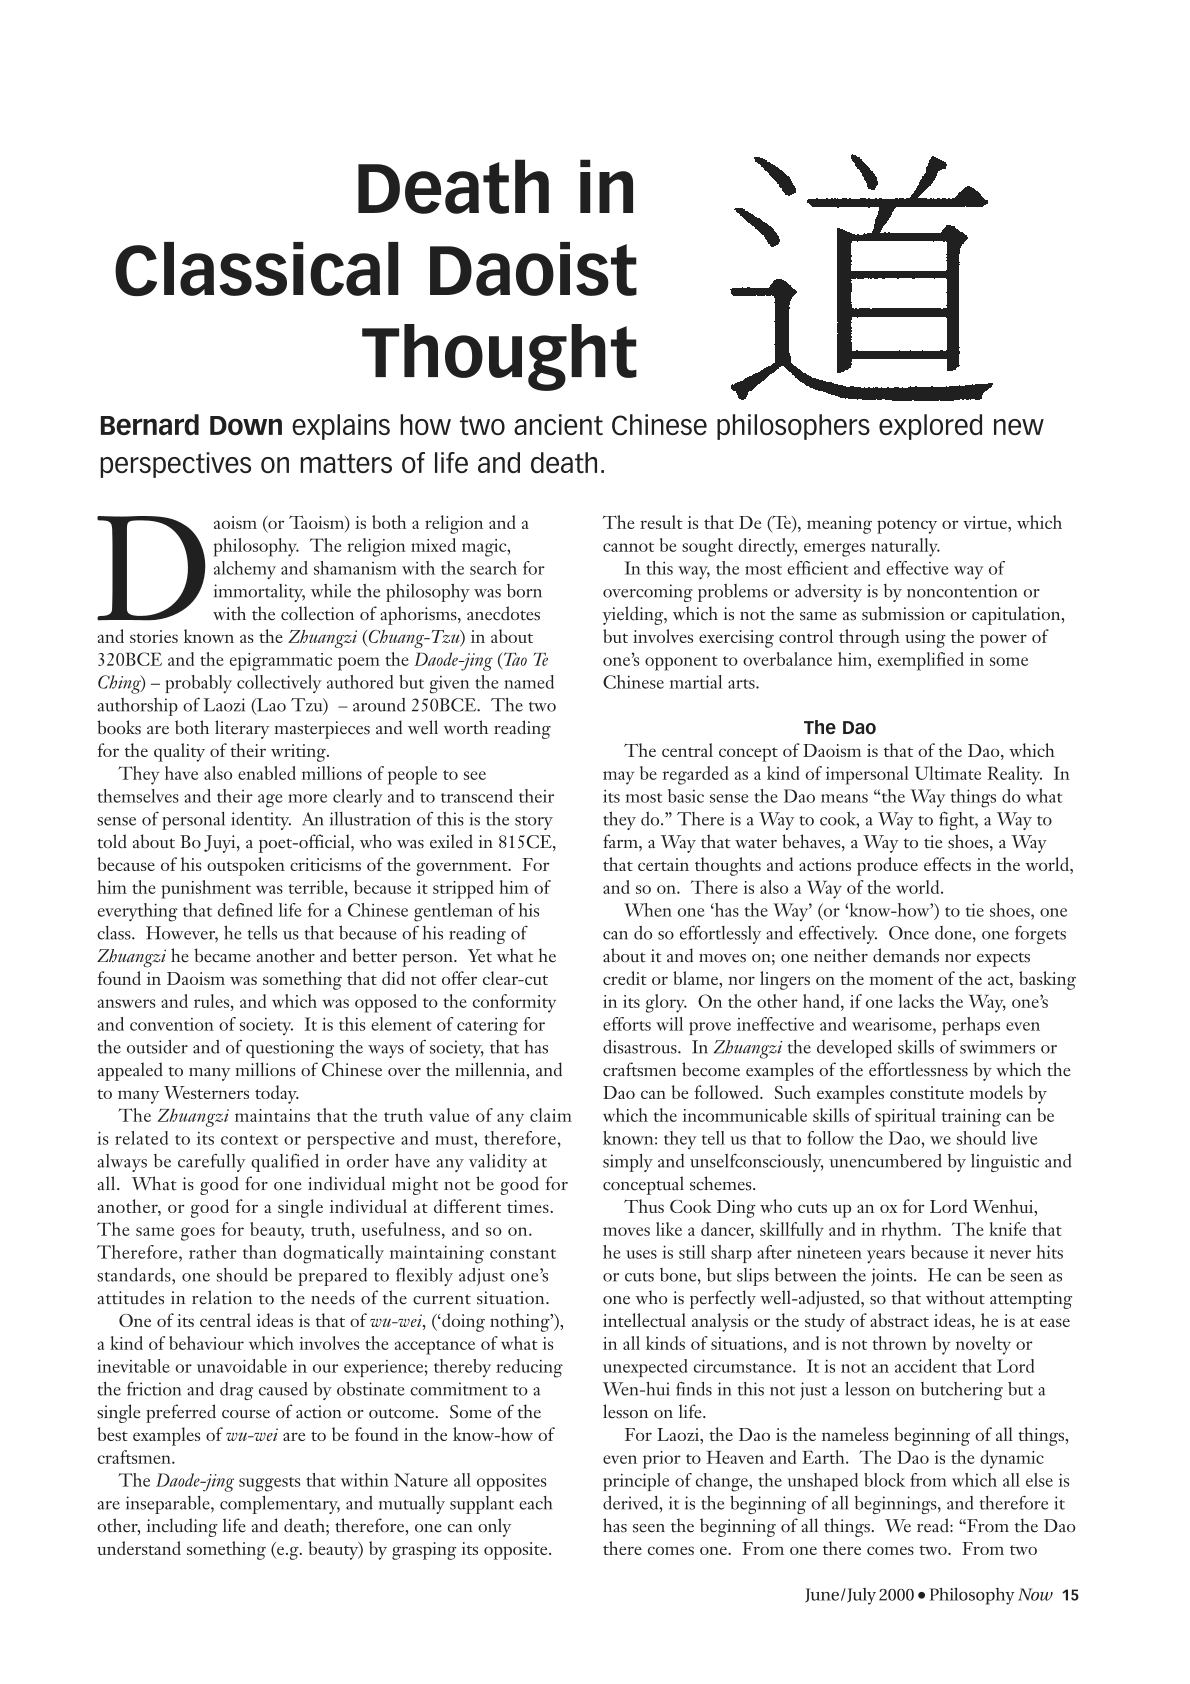 Death and Daoism - Bernard Down - Philosophy Now (Philosophy